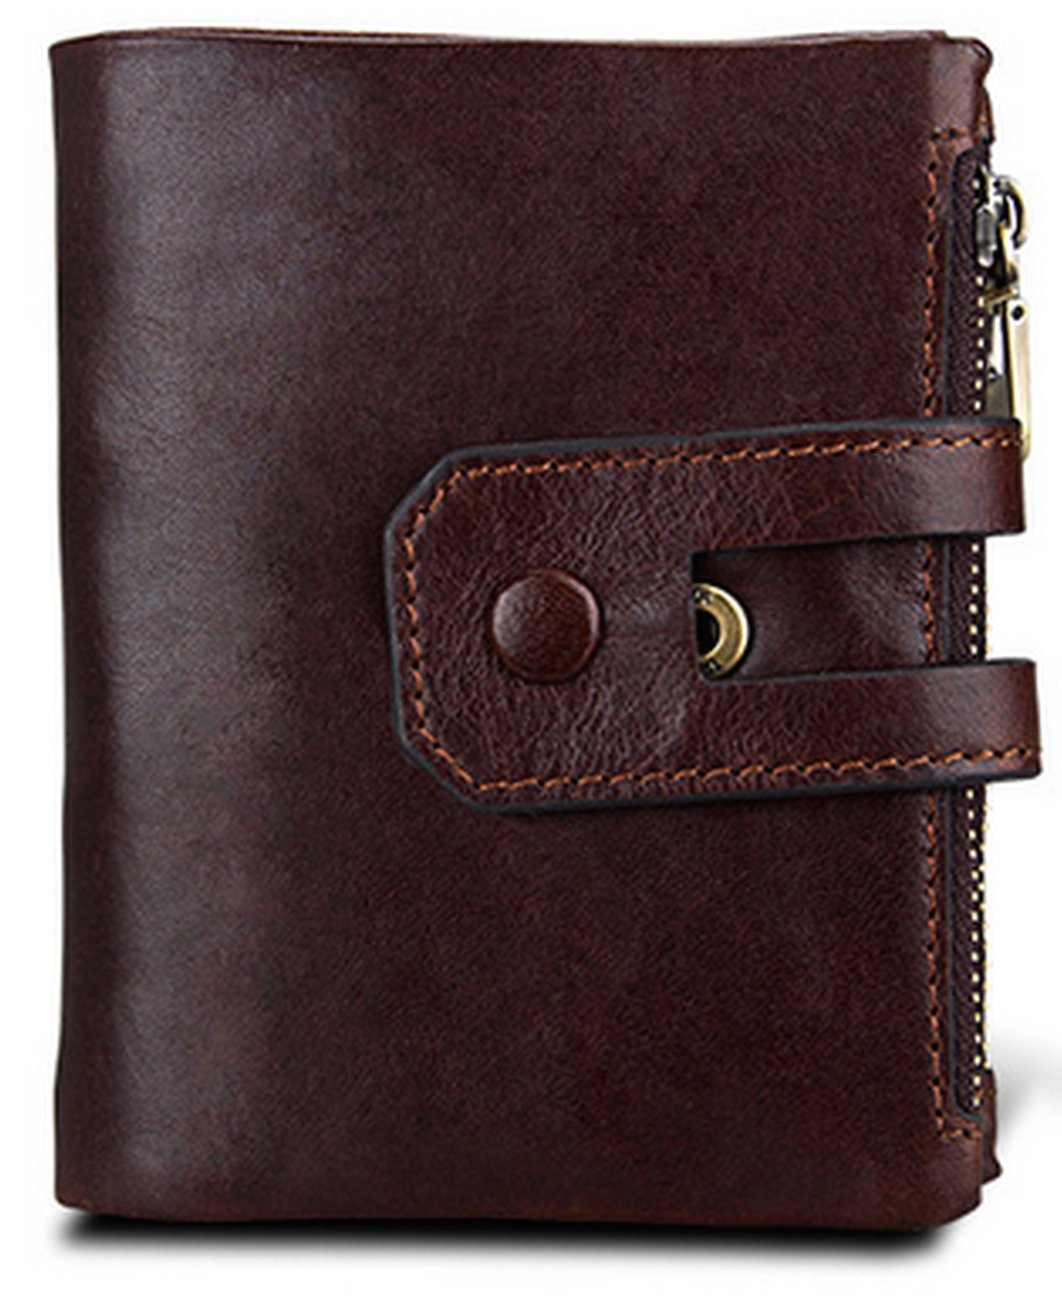 Men's RFID Blocking Crazy Horse Leather ID Window SD Memory Card Zipper Coin Pocket Bifold Wallet, Free Gift Box, Red Brown, b2w006ch